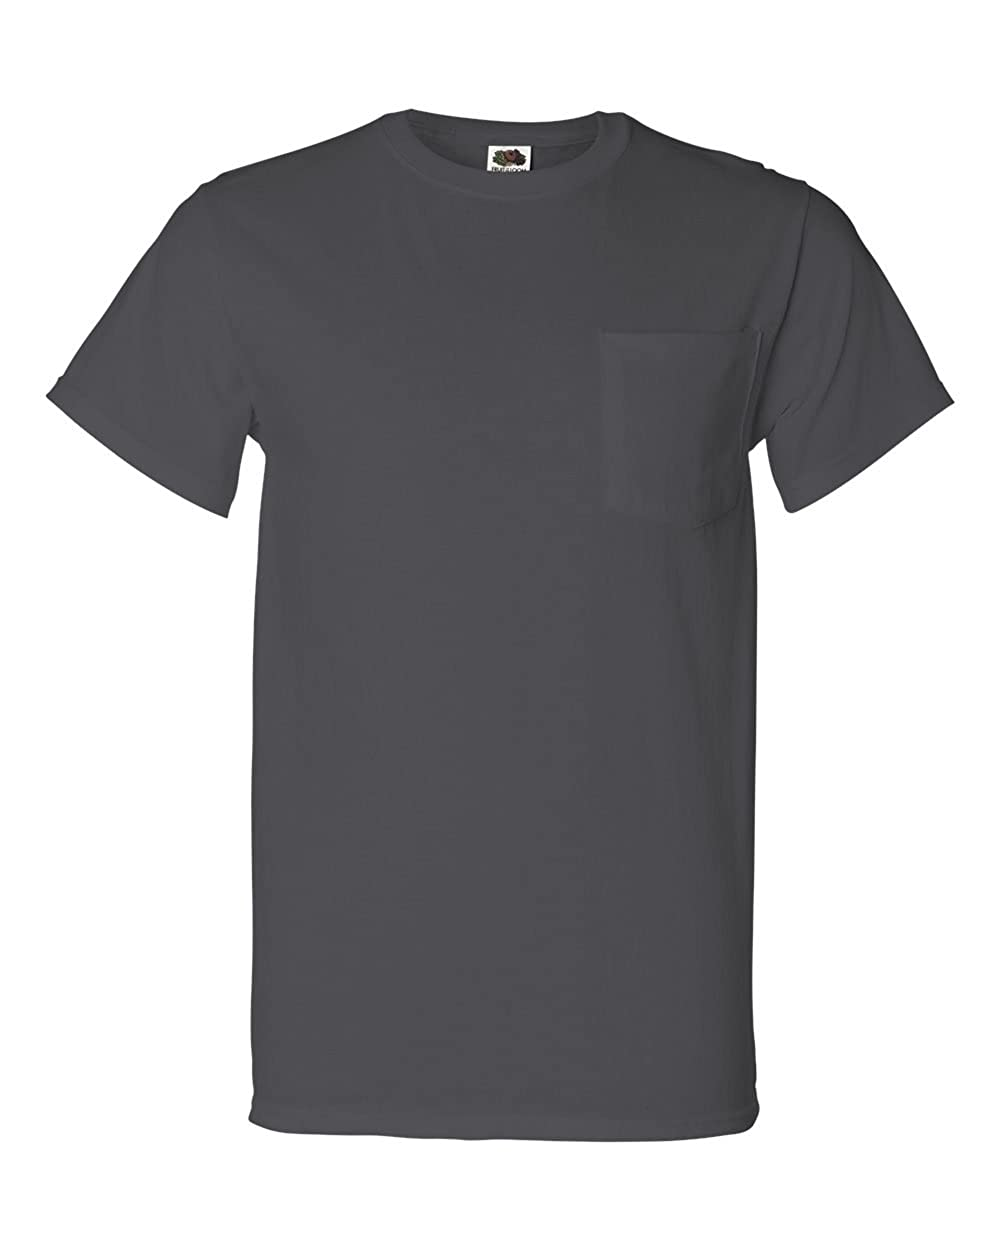 Top 10 Wholesale Comfort Colors Pocket Tee Shirts Chinabrands Com